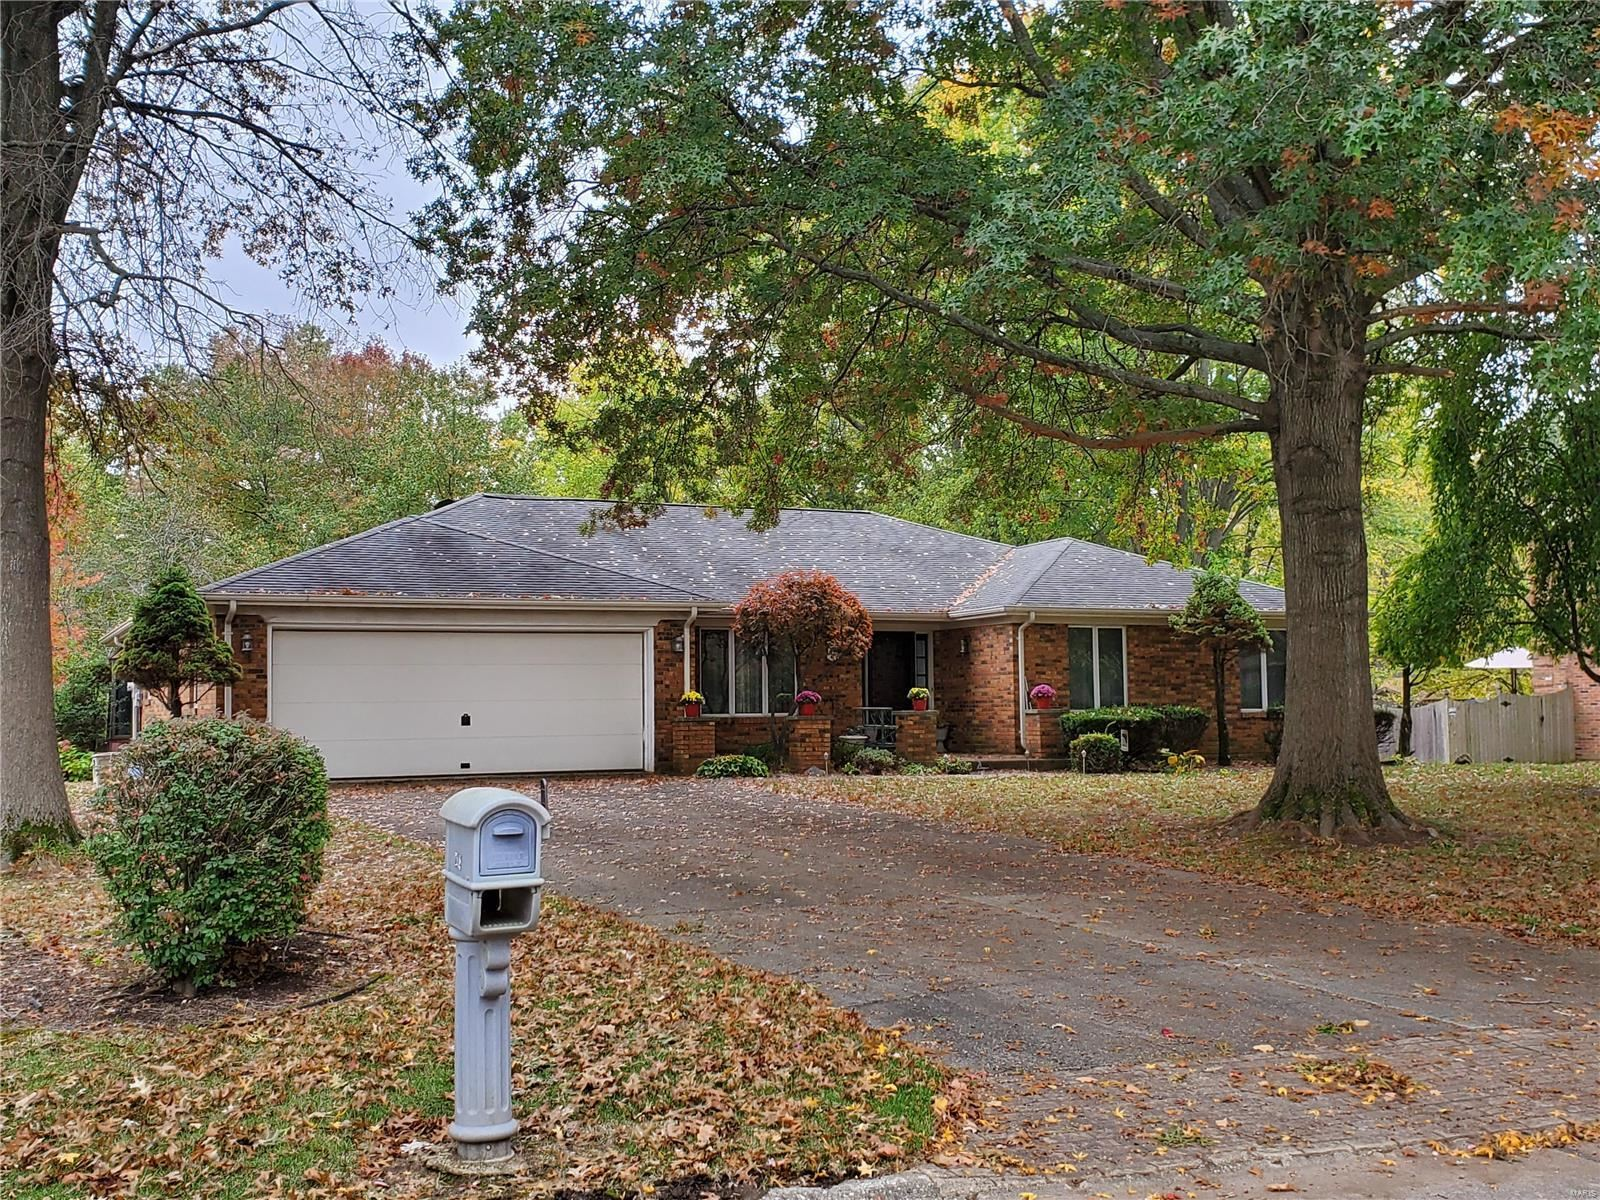 108 Sagebrush Drive, Belleville, IL 62221 - MLS#: 19084737